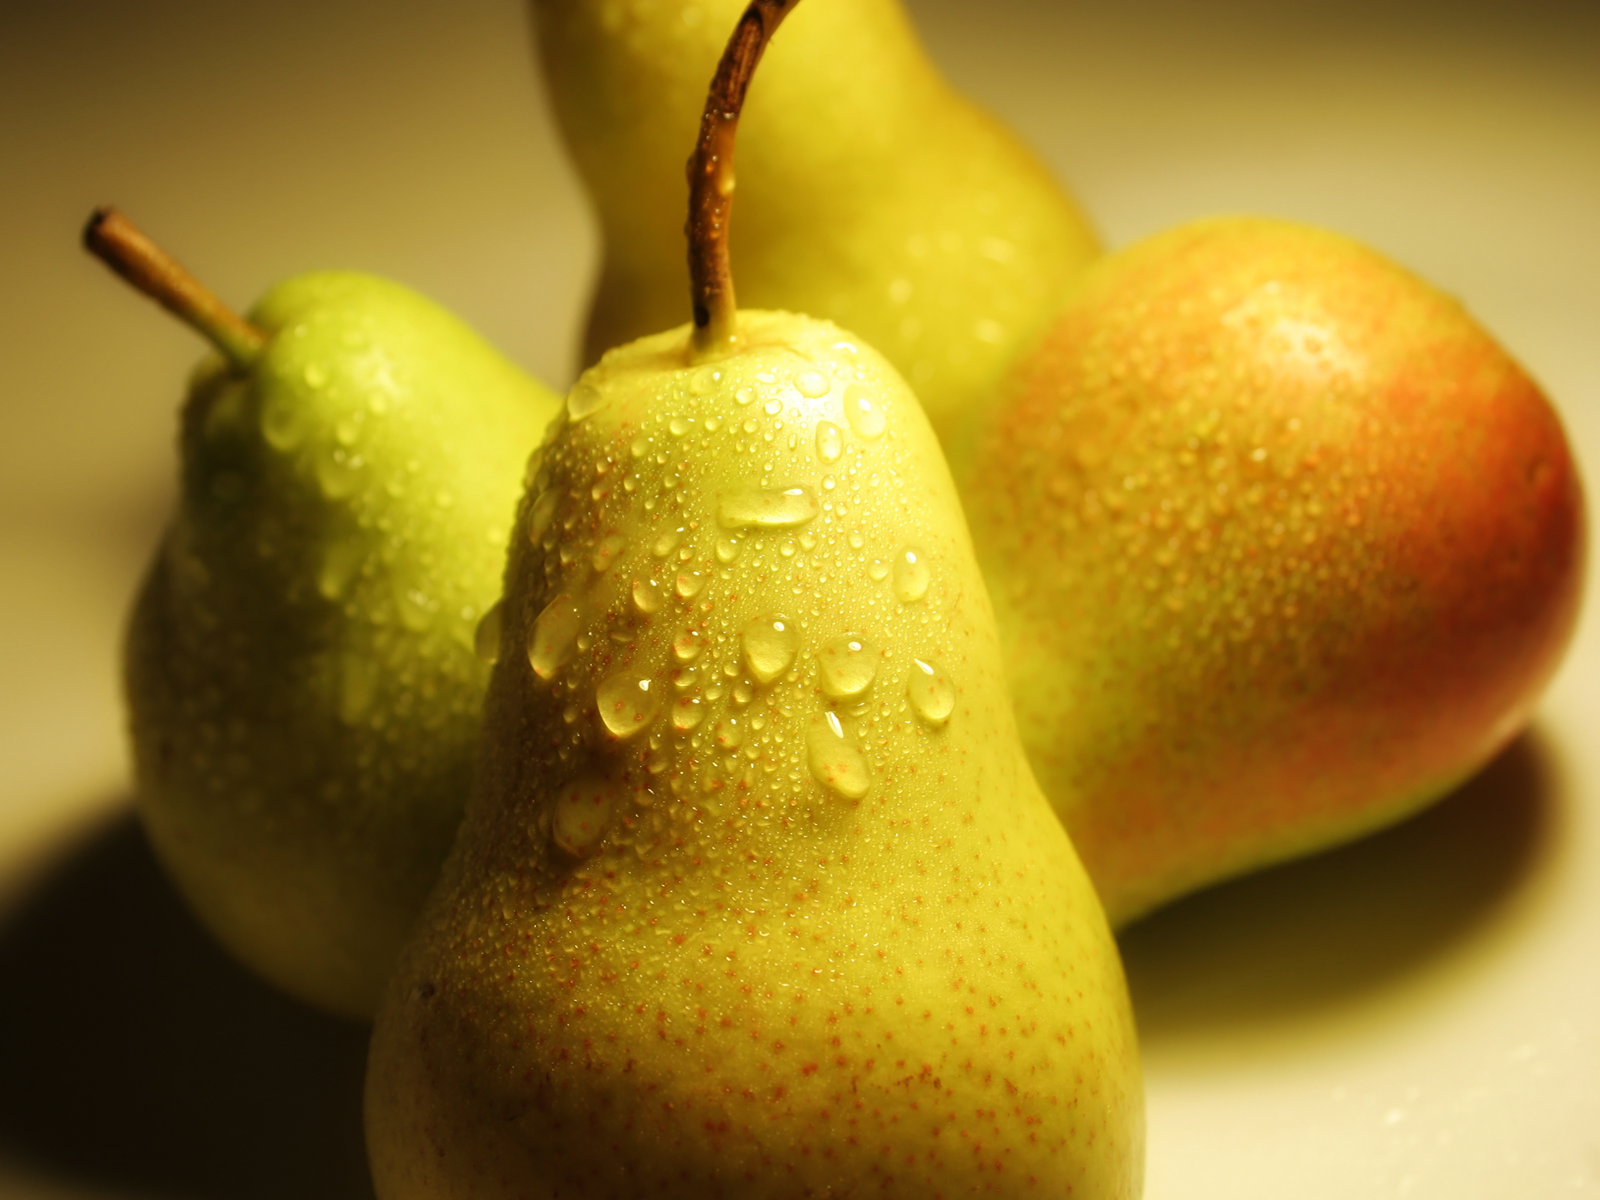 wet pears wallpaper